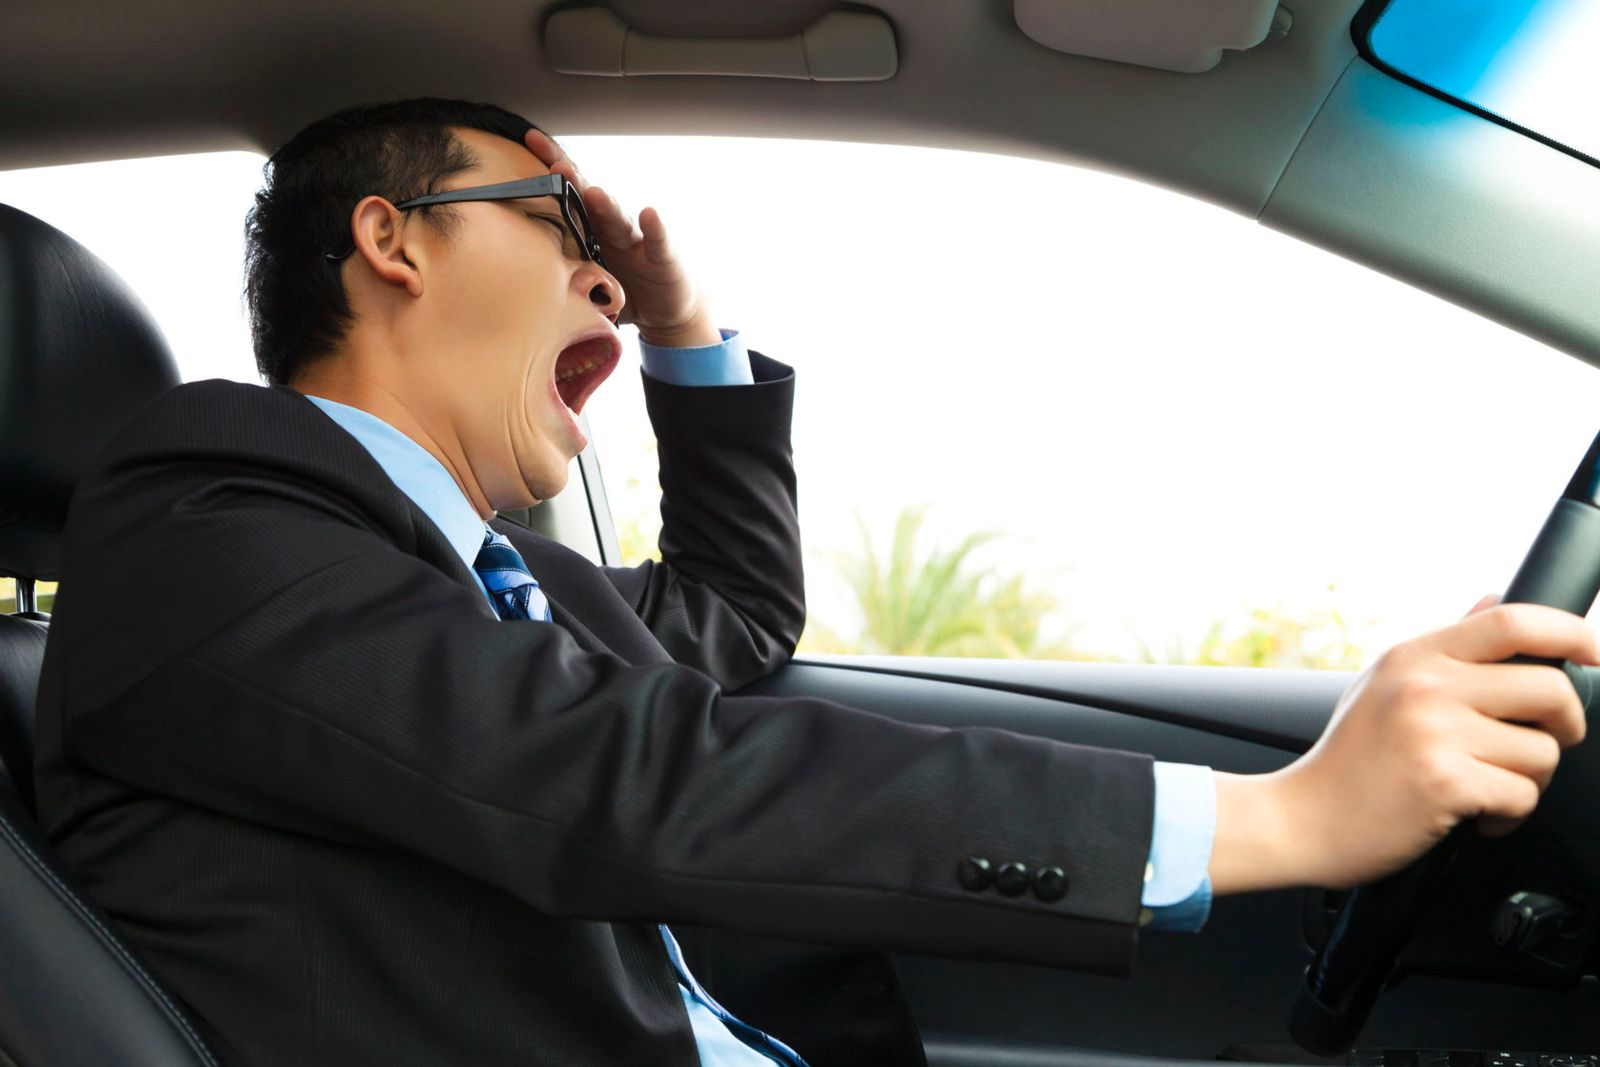 drowsy driving causes accidents